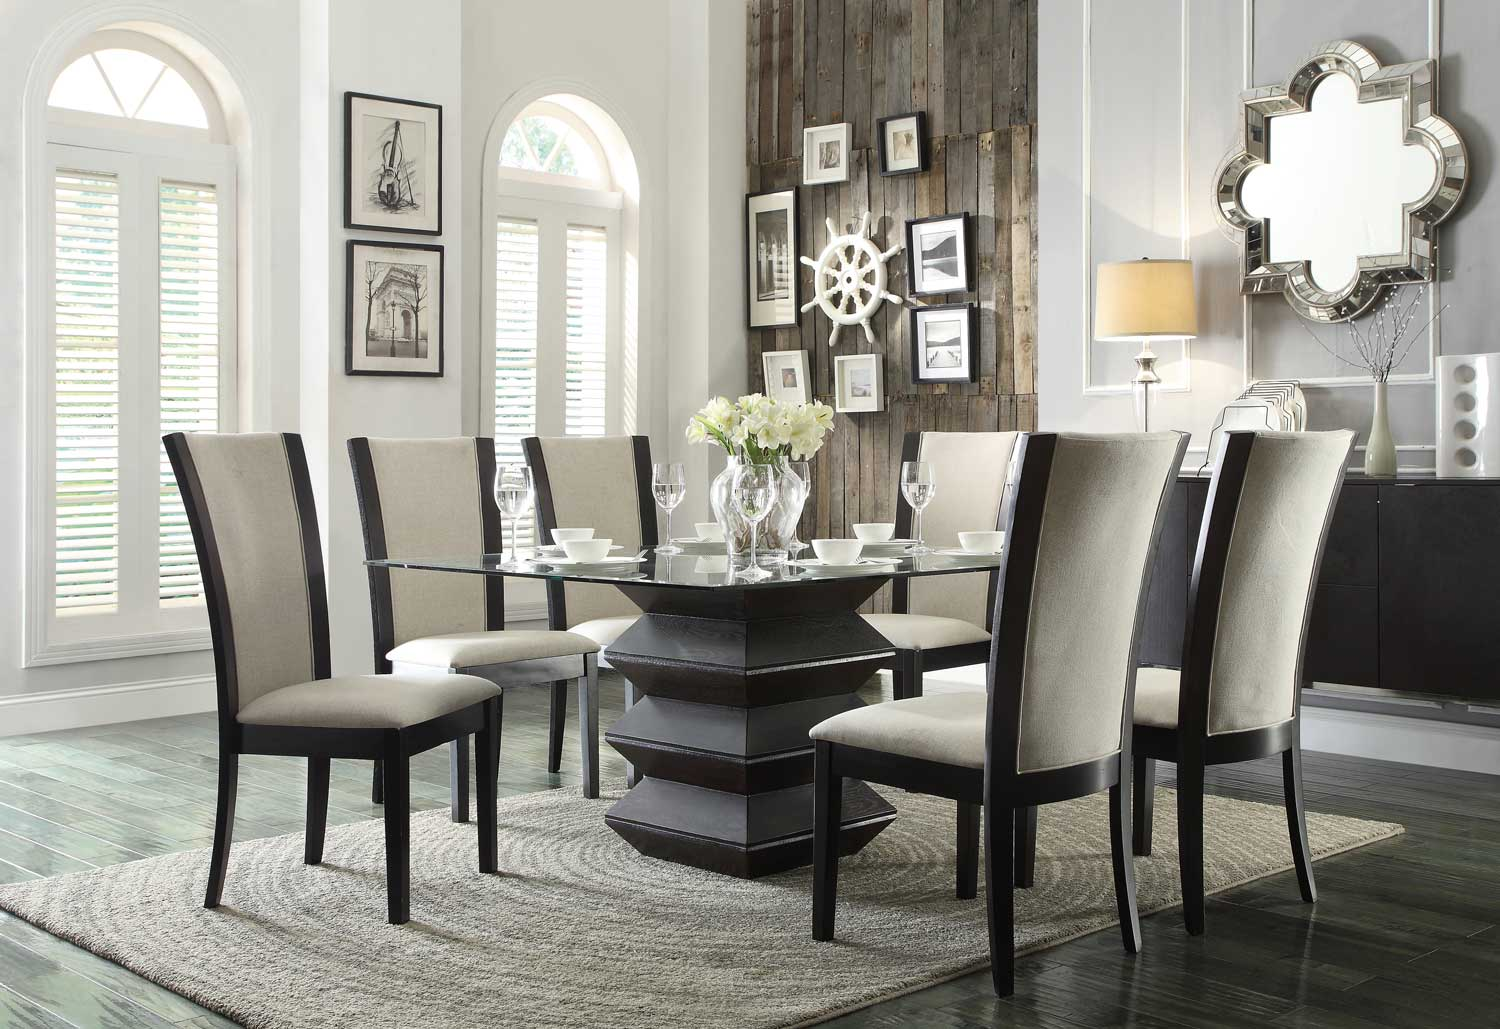 Homelegance Havre Dining Set - Beige Fabric Chairs